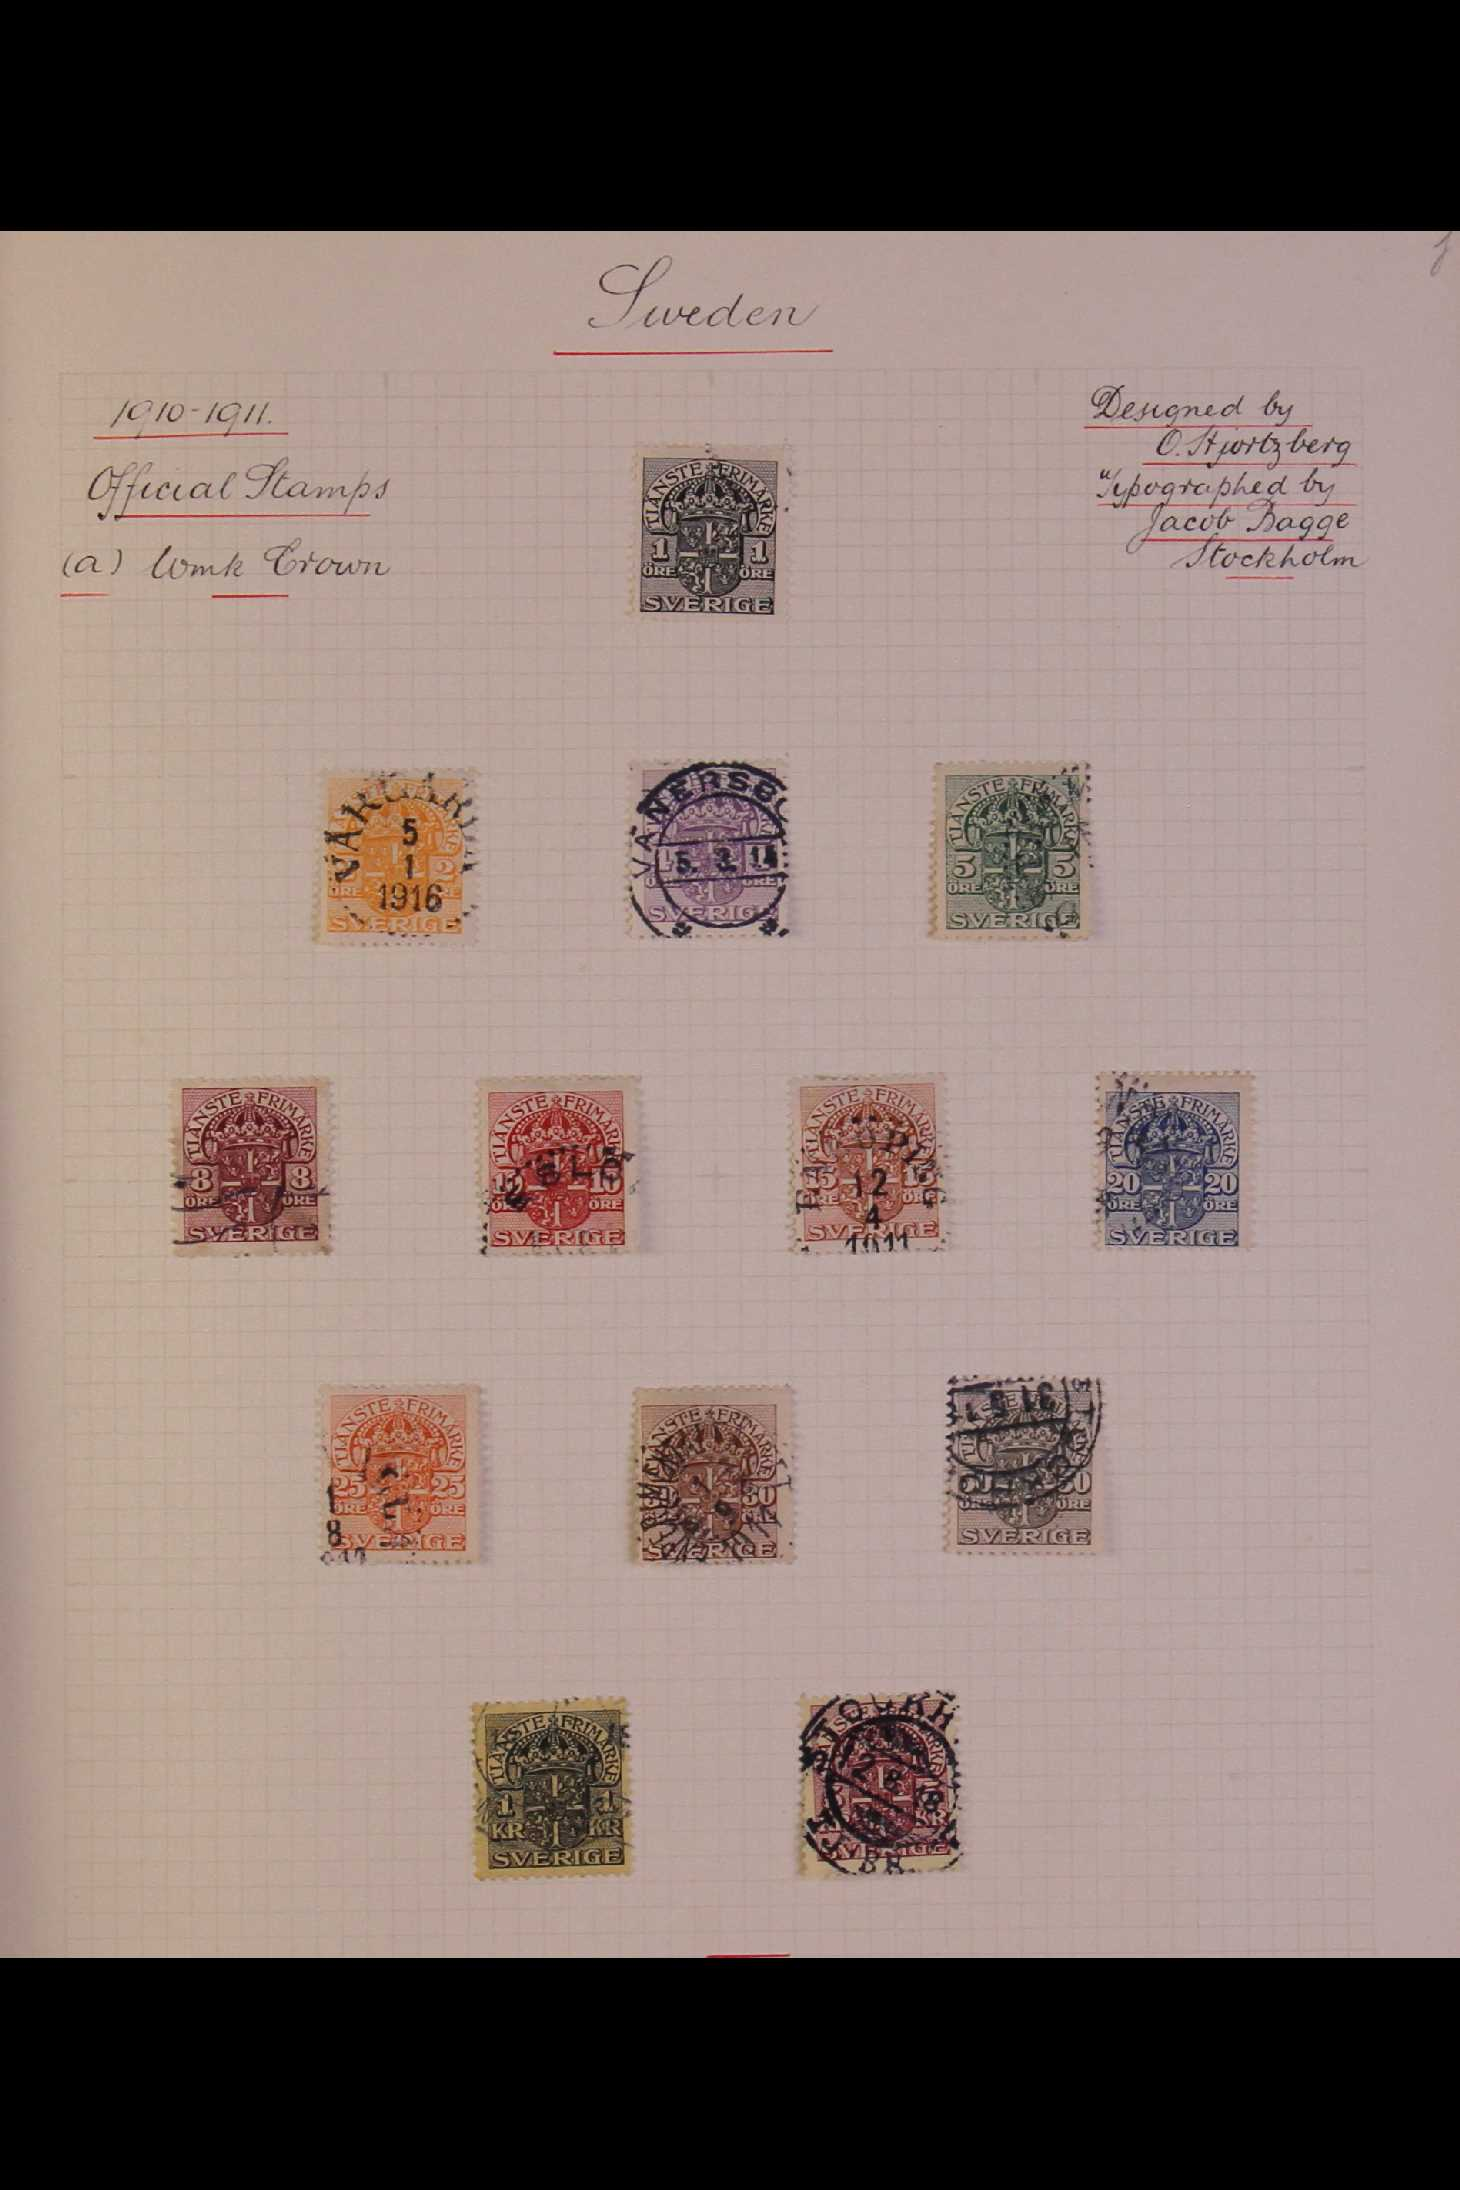 SWEDEN 1903-1966 USED COLLECTION incl. 1903 5k GPO, 1910-19 wmk Crown set, 1916 Landstorm surcharges - Image 12 of 12